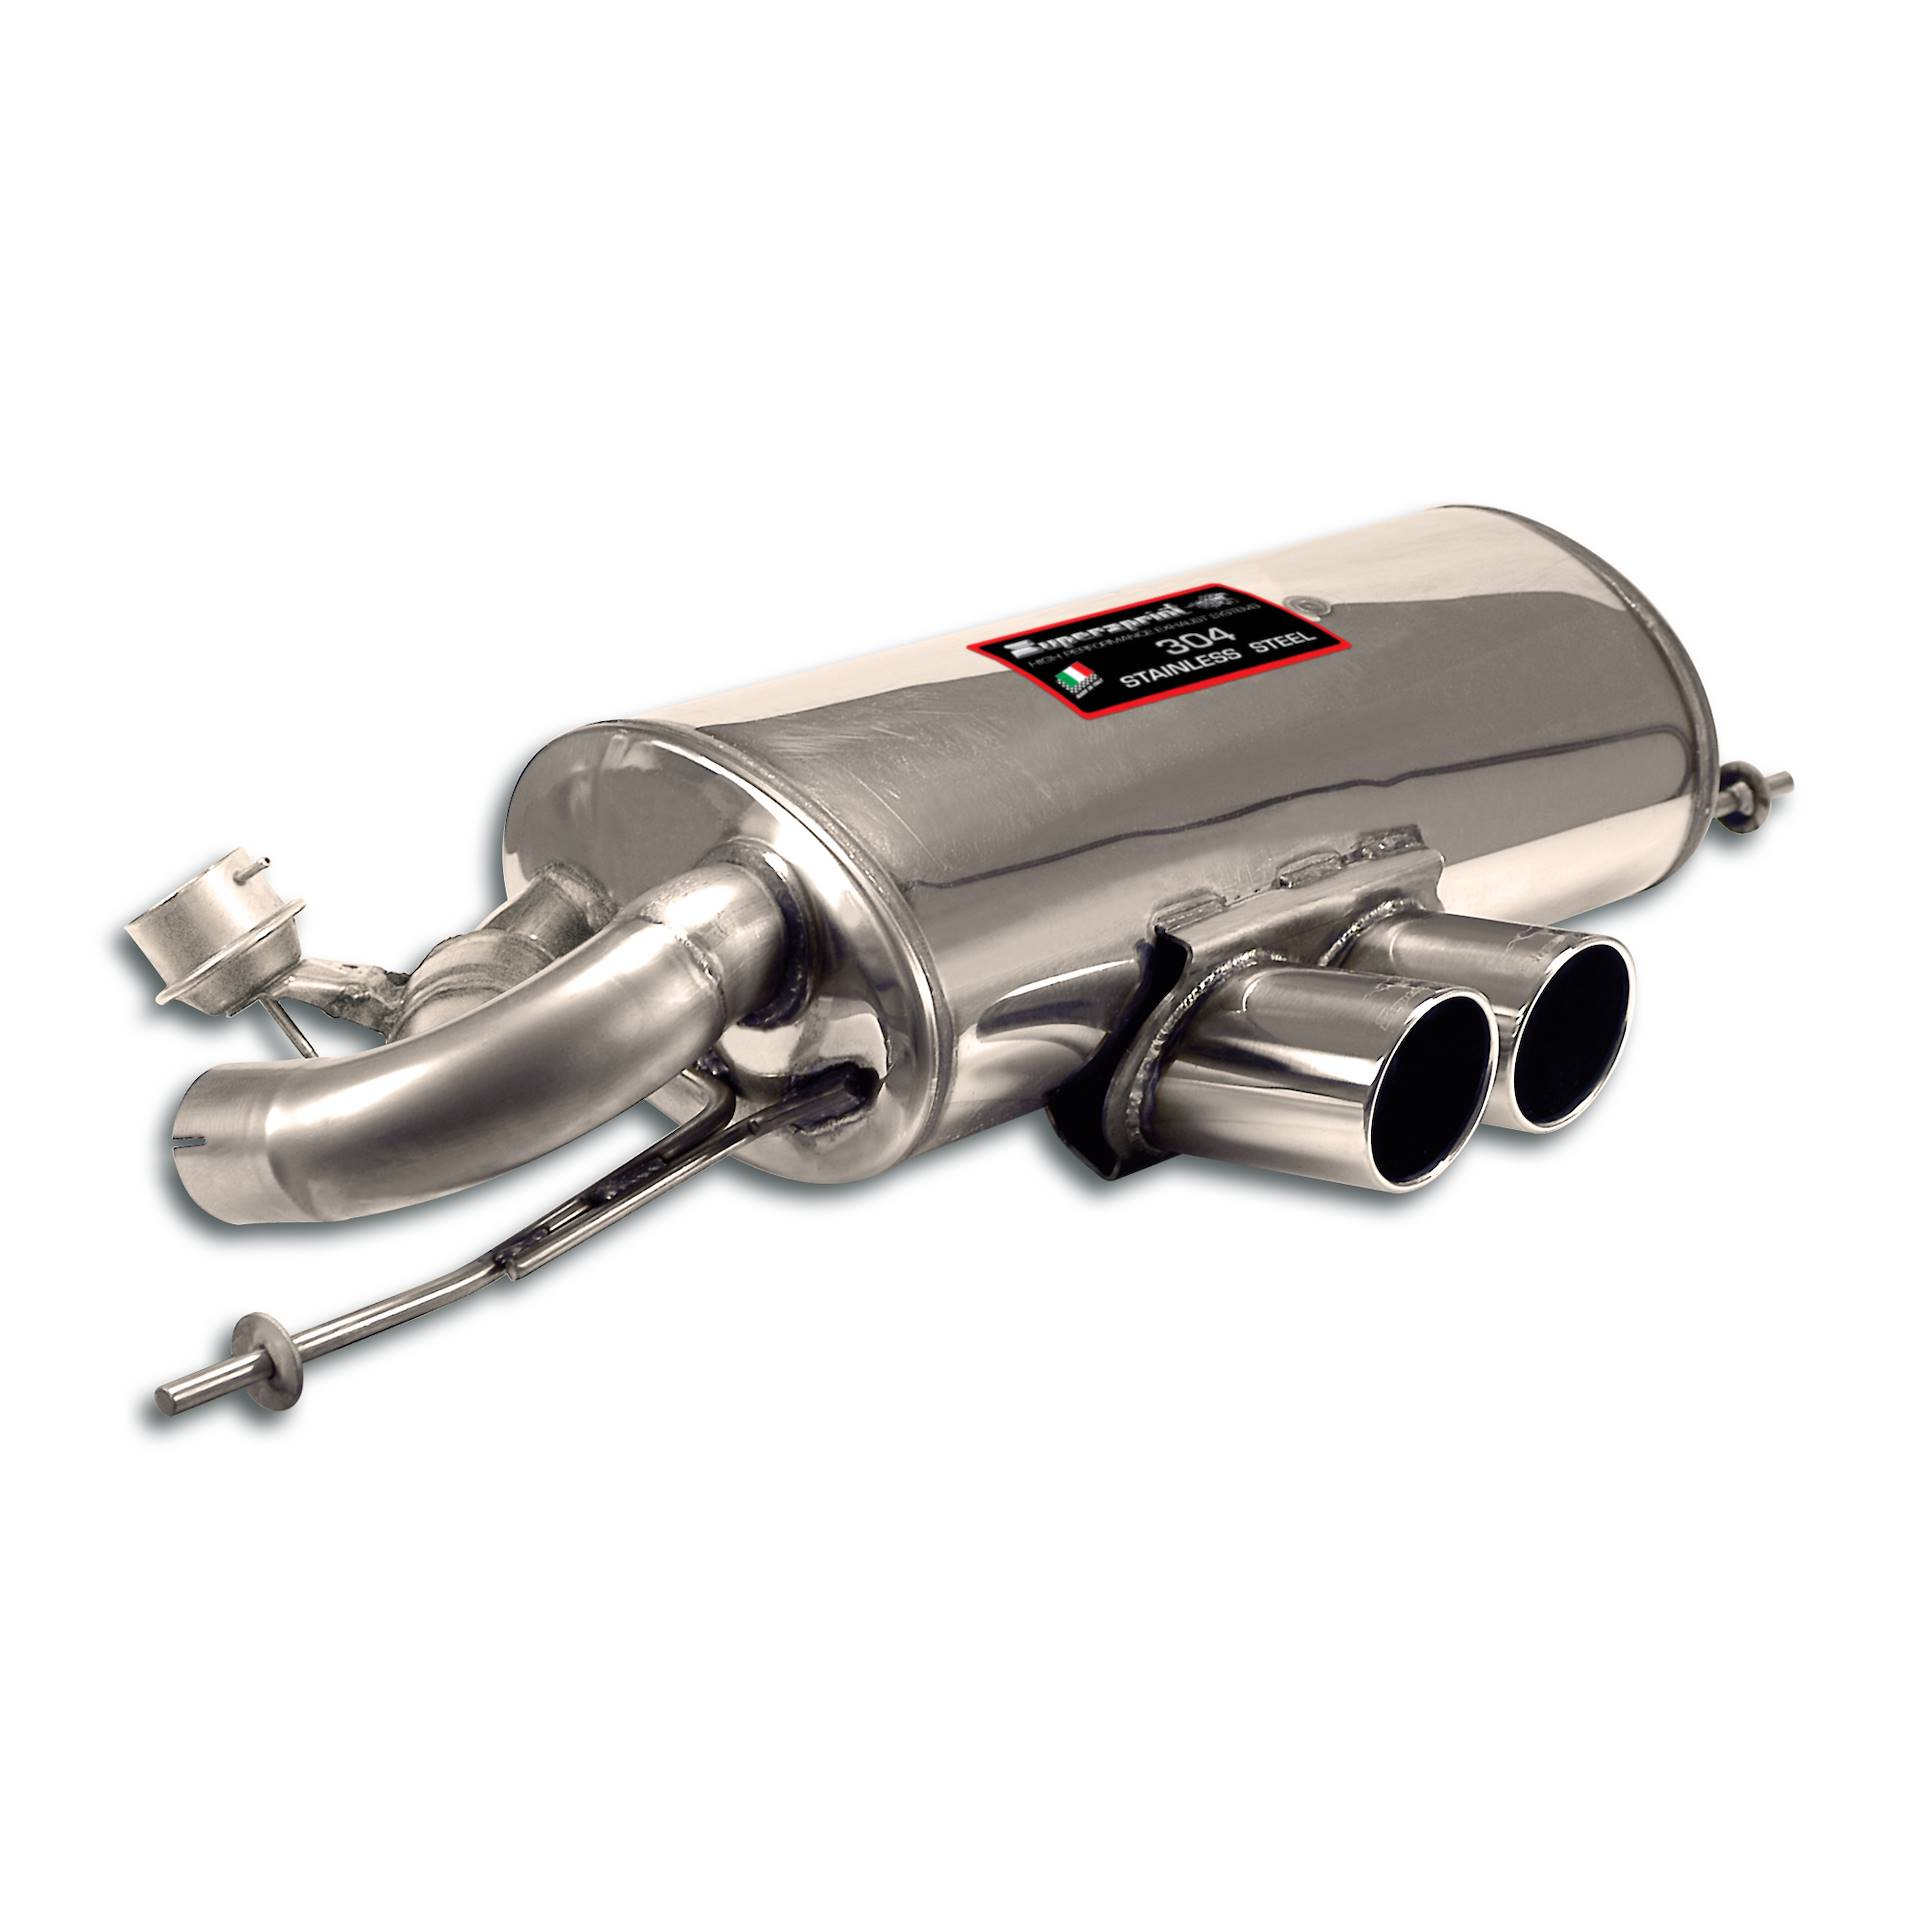 Performance sport exhaust for LOTUS EVORA Sport 410, LOTUS EVORA